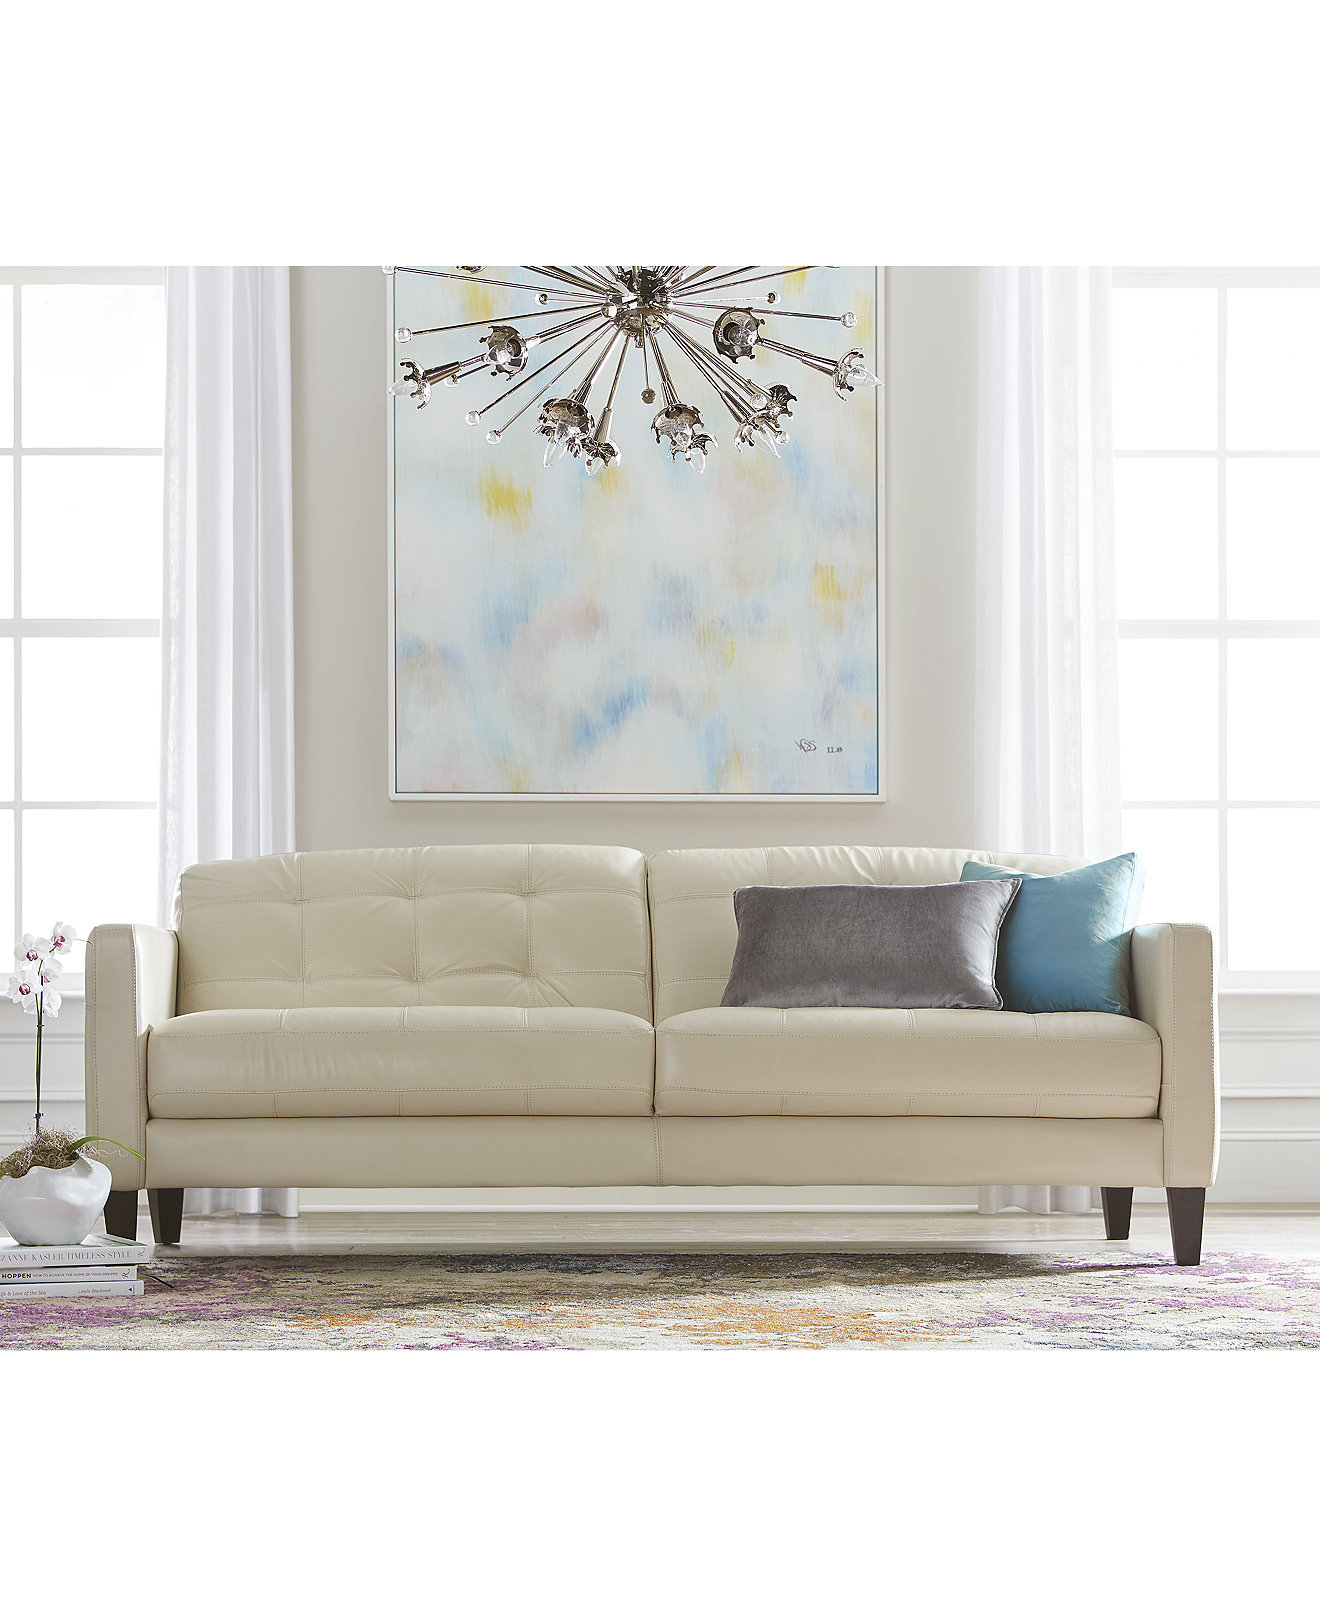 Versace Living Room Furniture Milan Leather Sofa Living Room Furniture Collection Furniture